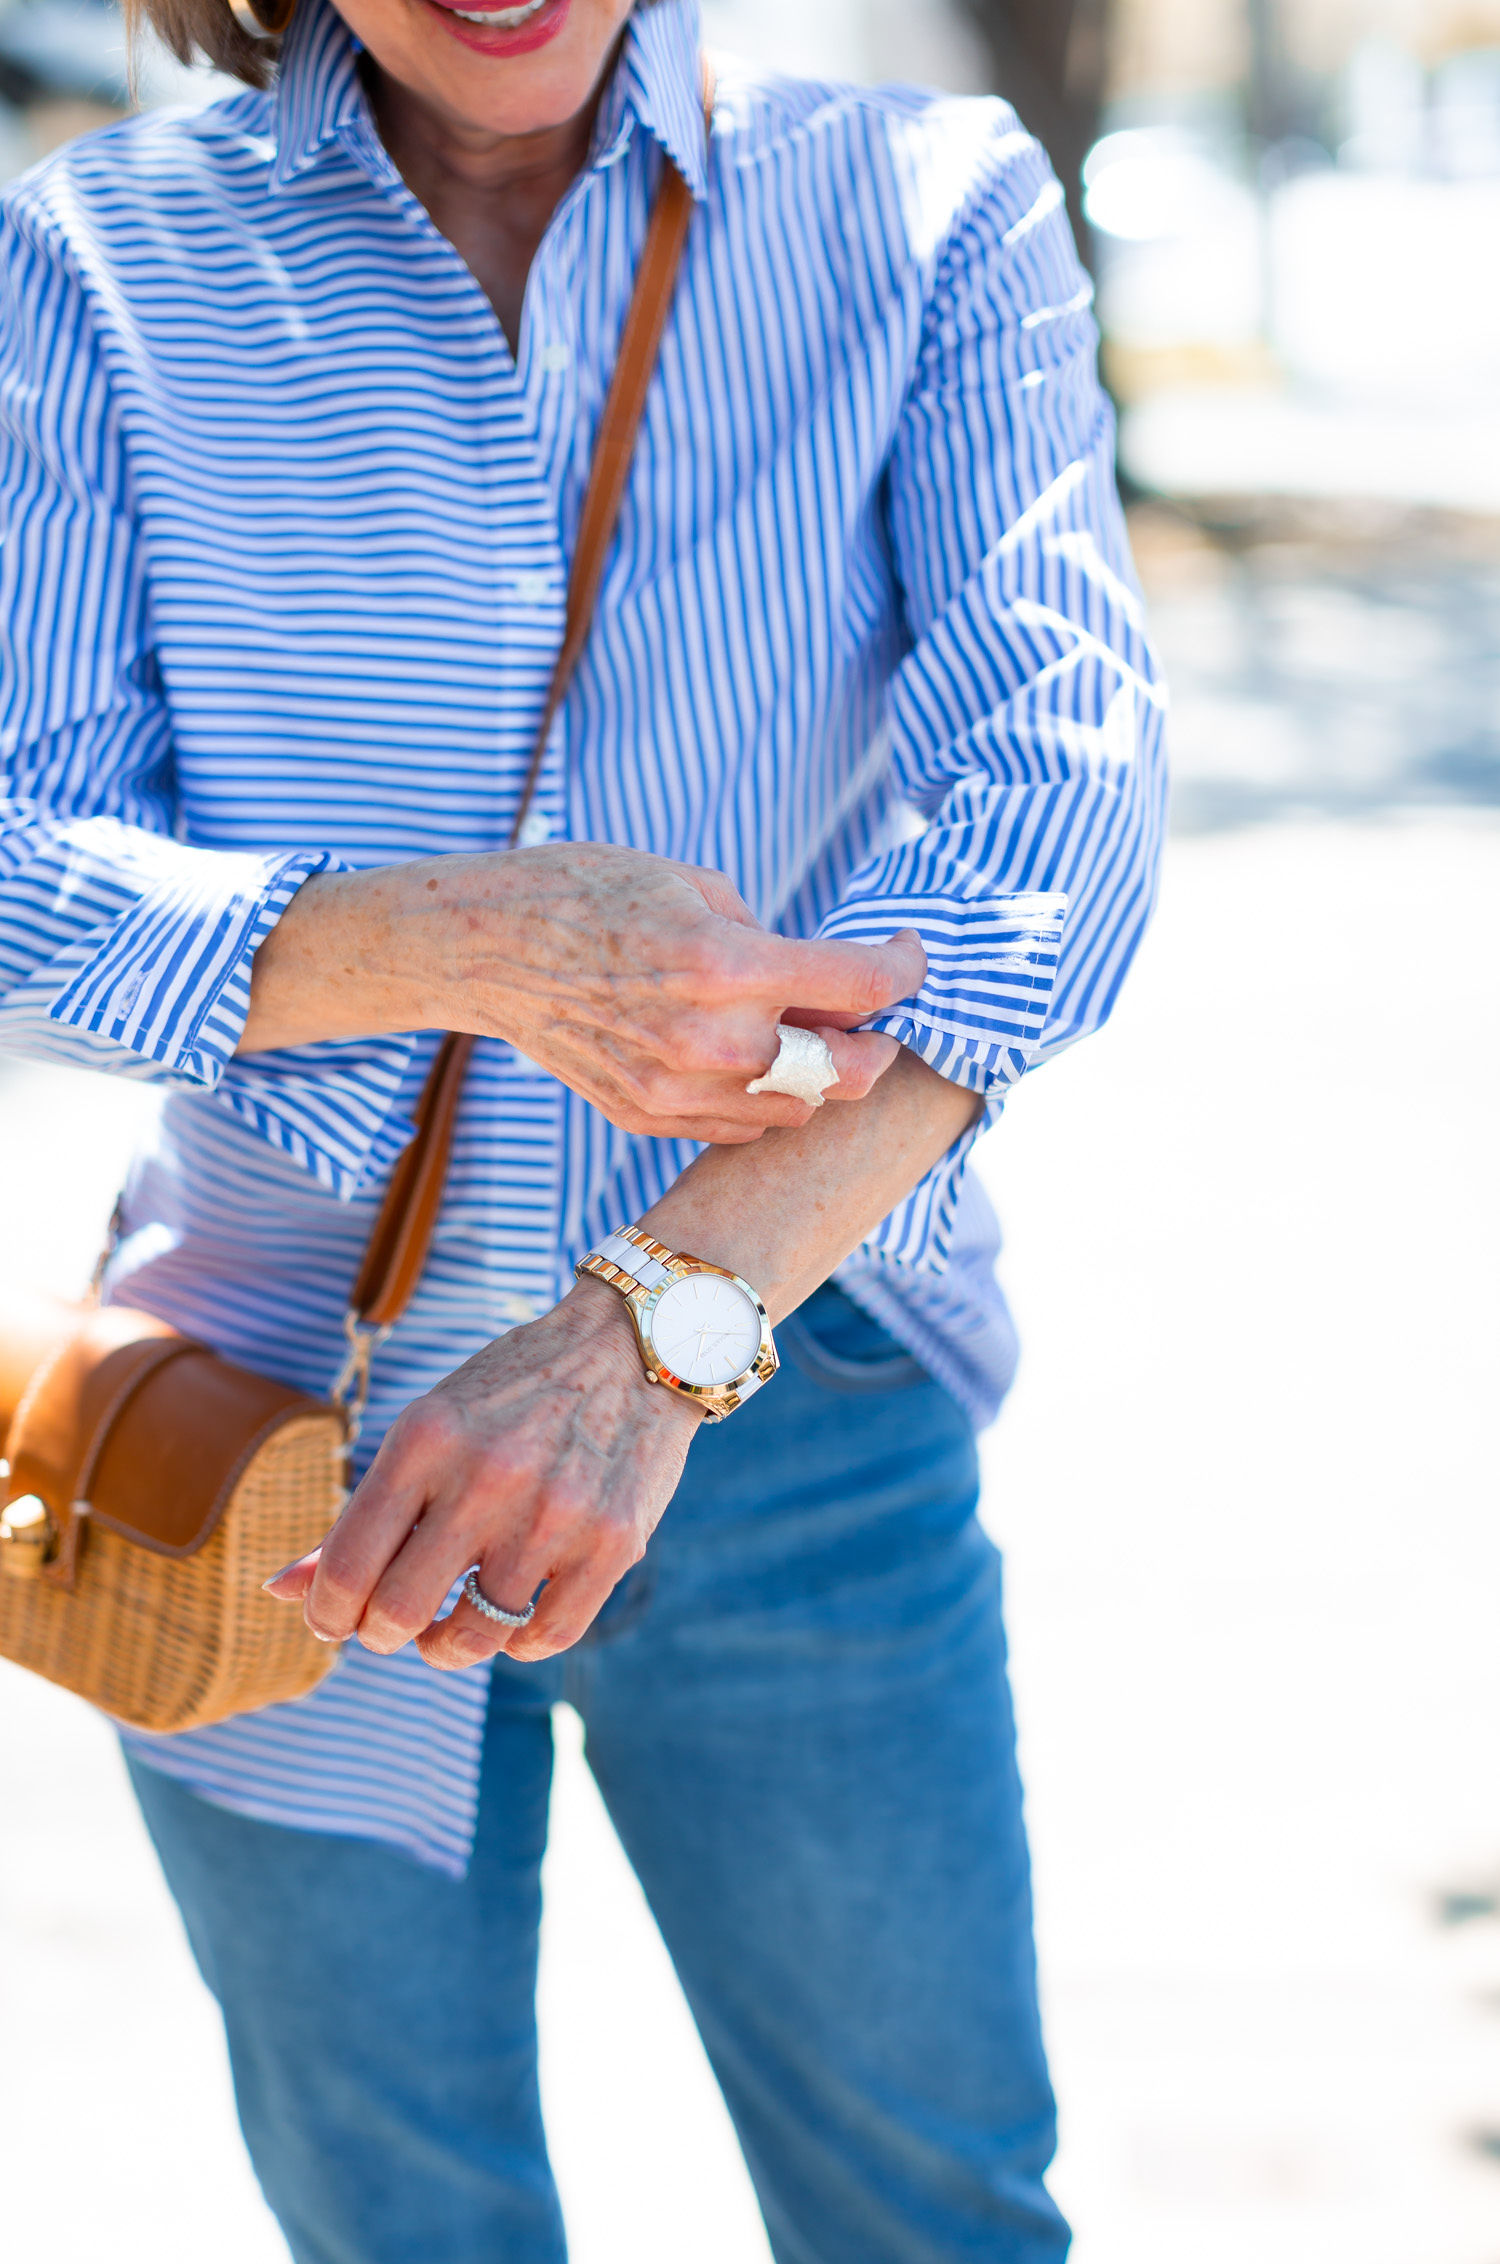 Michael Kors Watch and silver ring by Brenda Schoenfeld worn by Debby Allbright